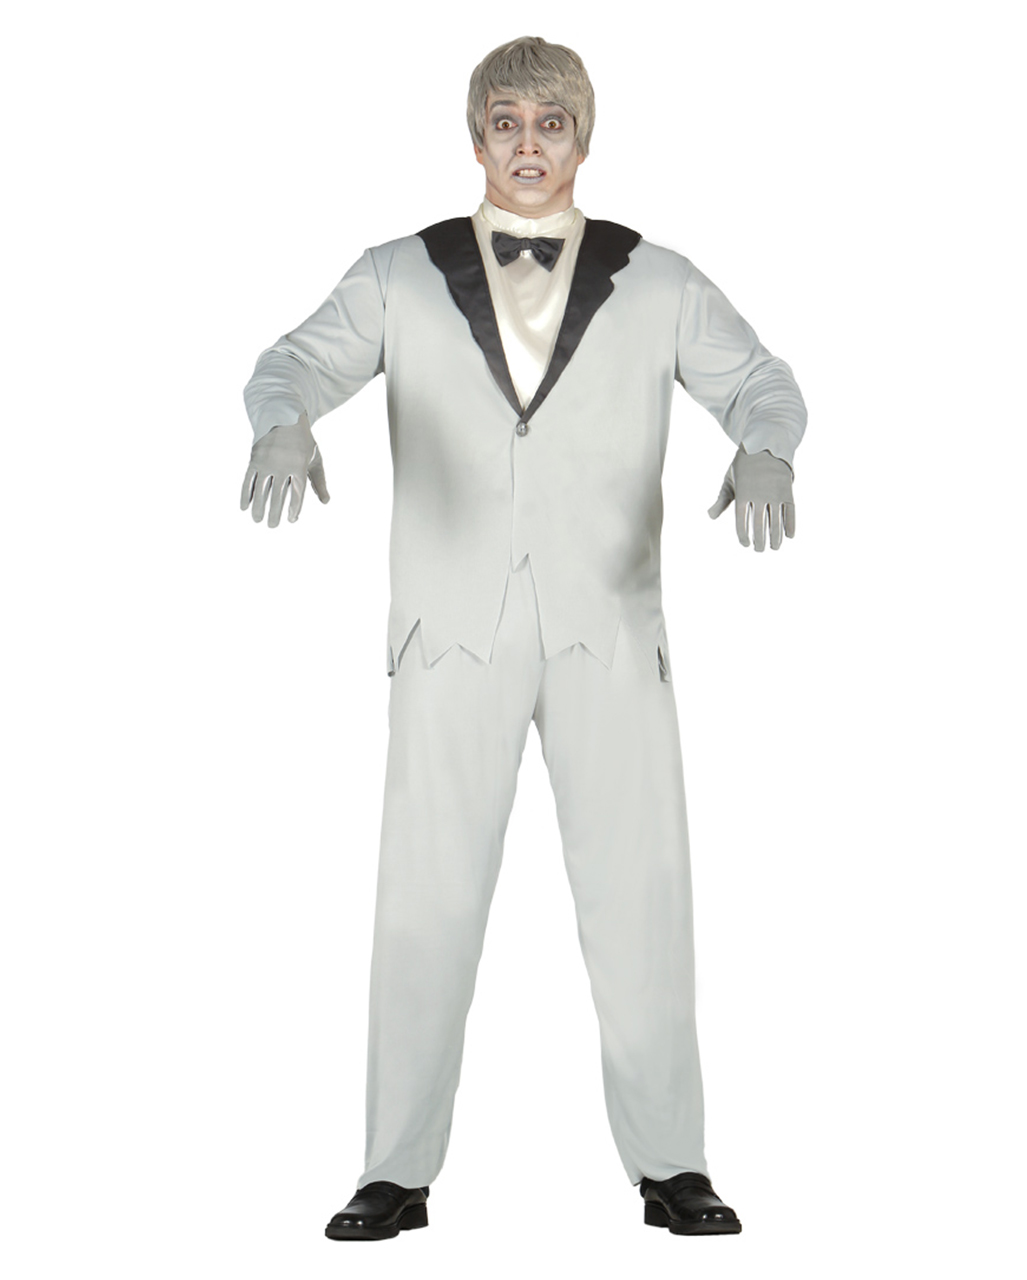 Elegant Ghost Groom Costume For a creepy Halloween | horror-shop.com